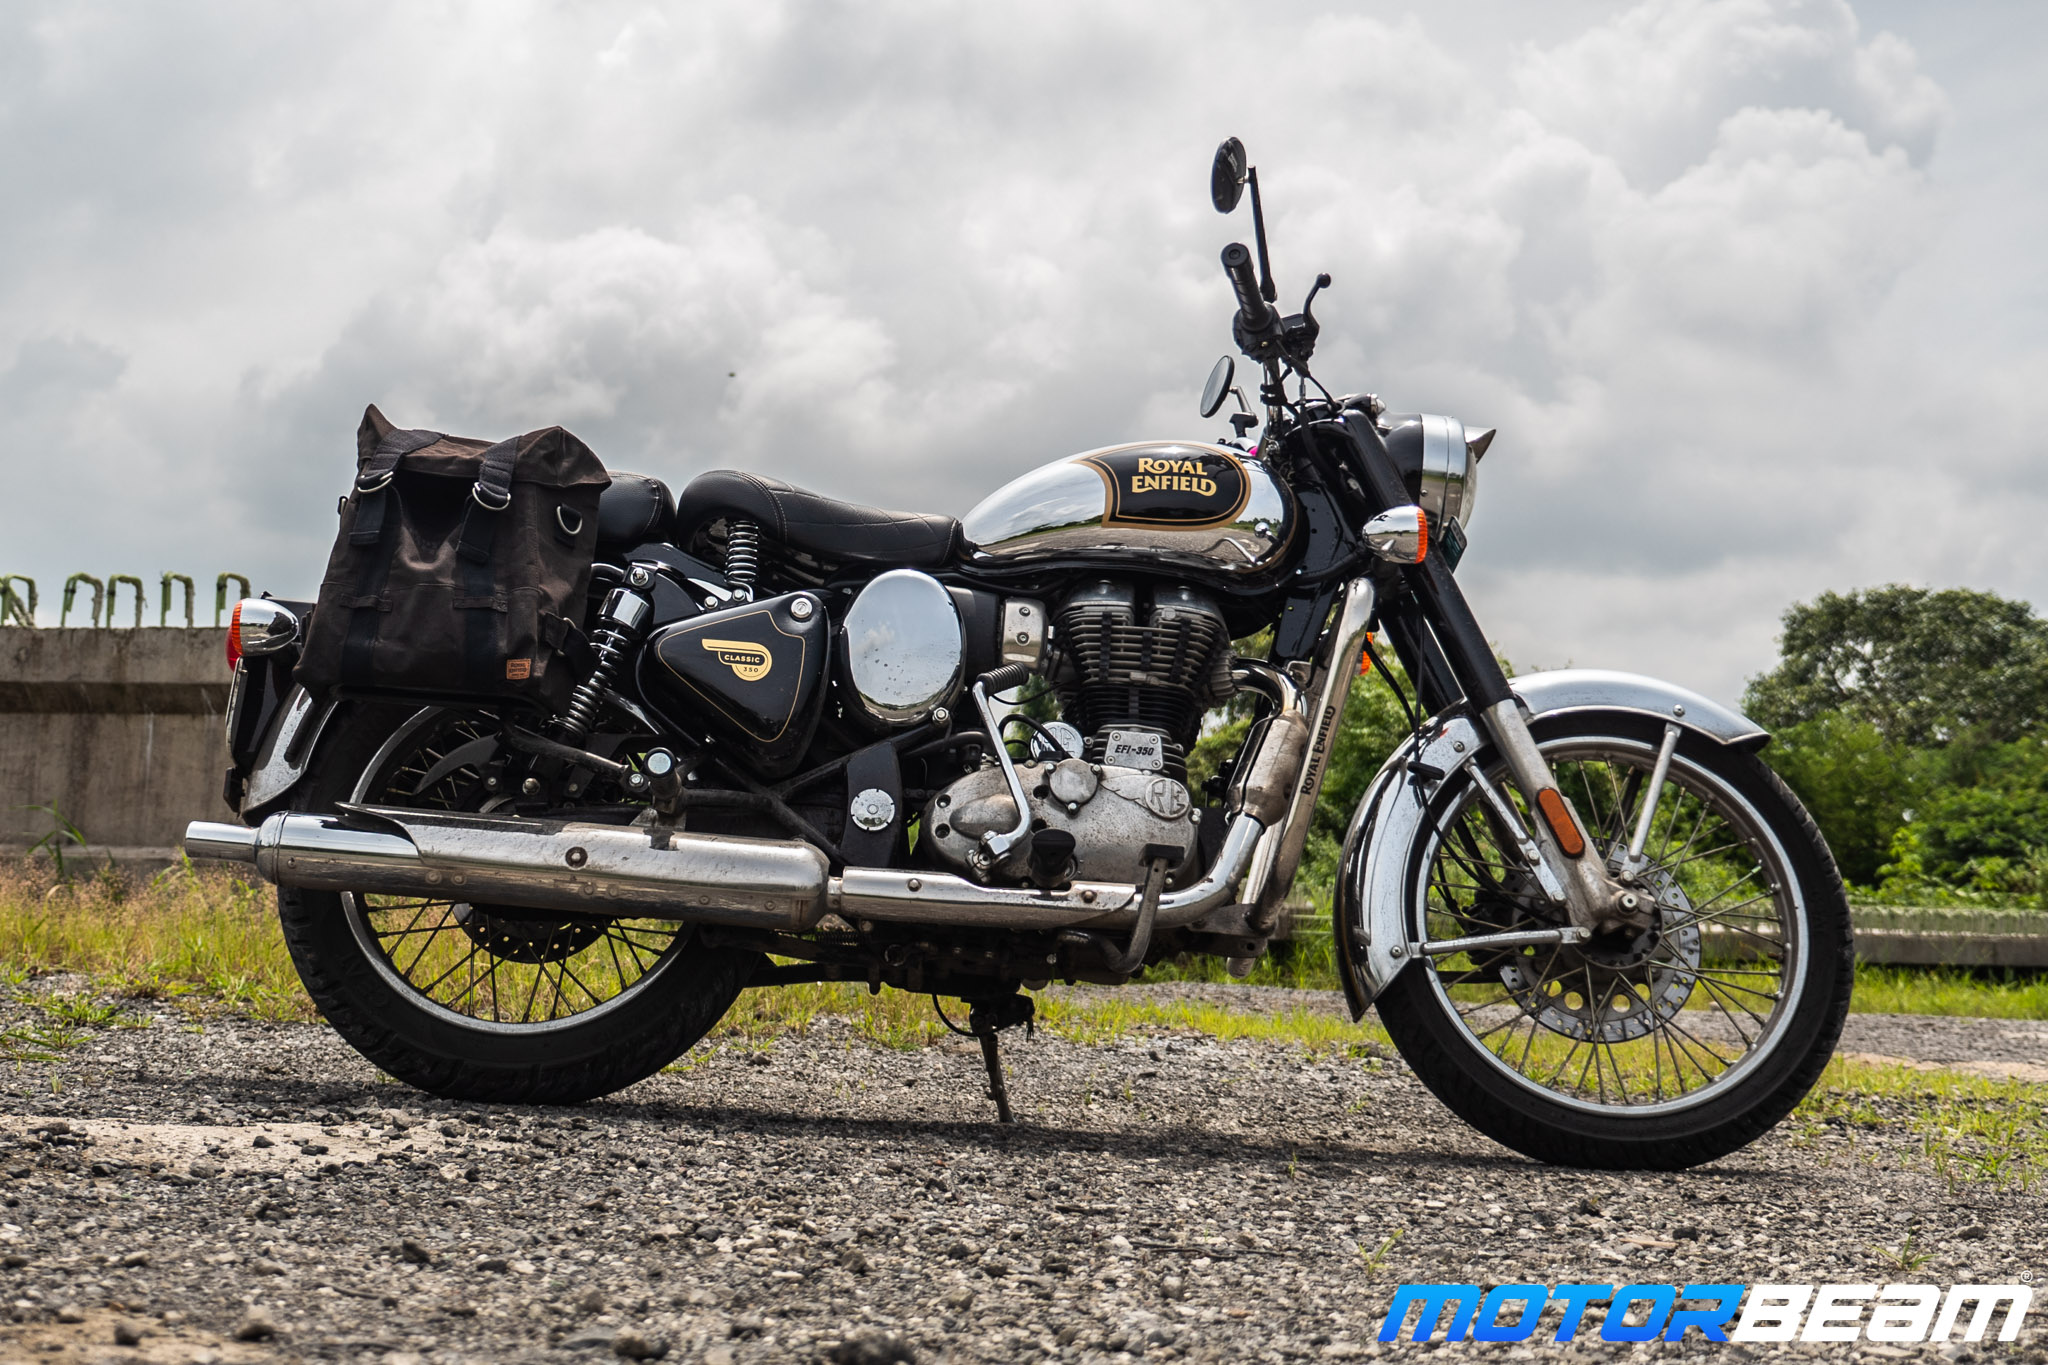 2020 Royal Enfield Classic 350 Review 11